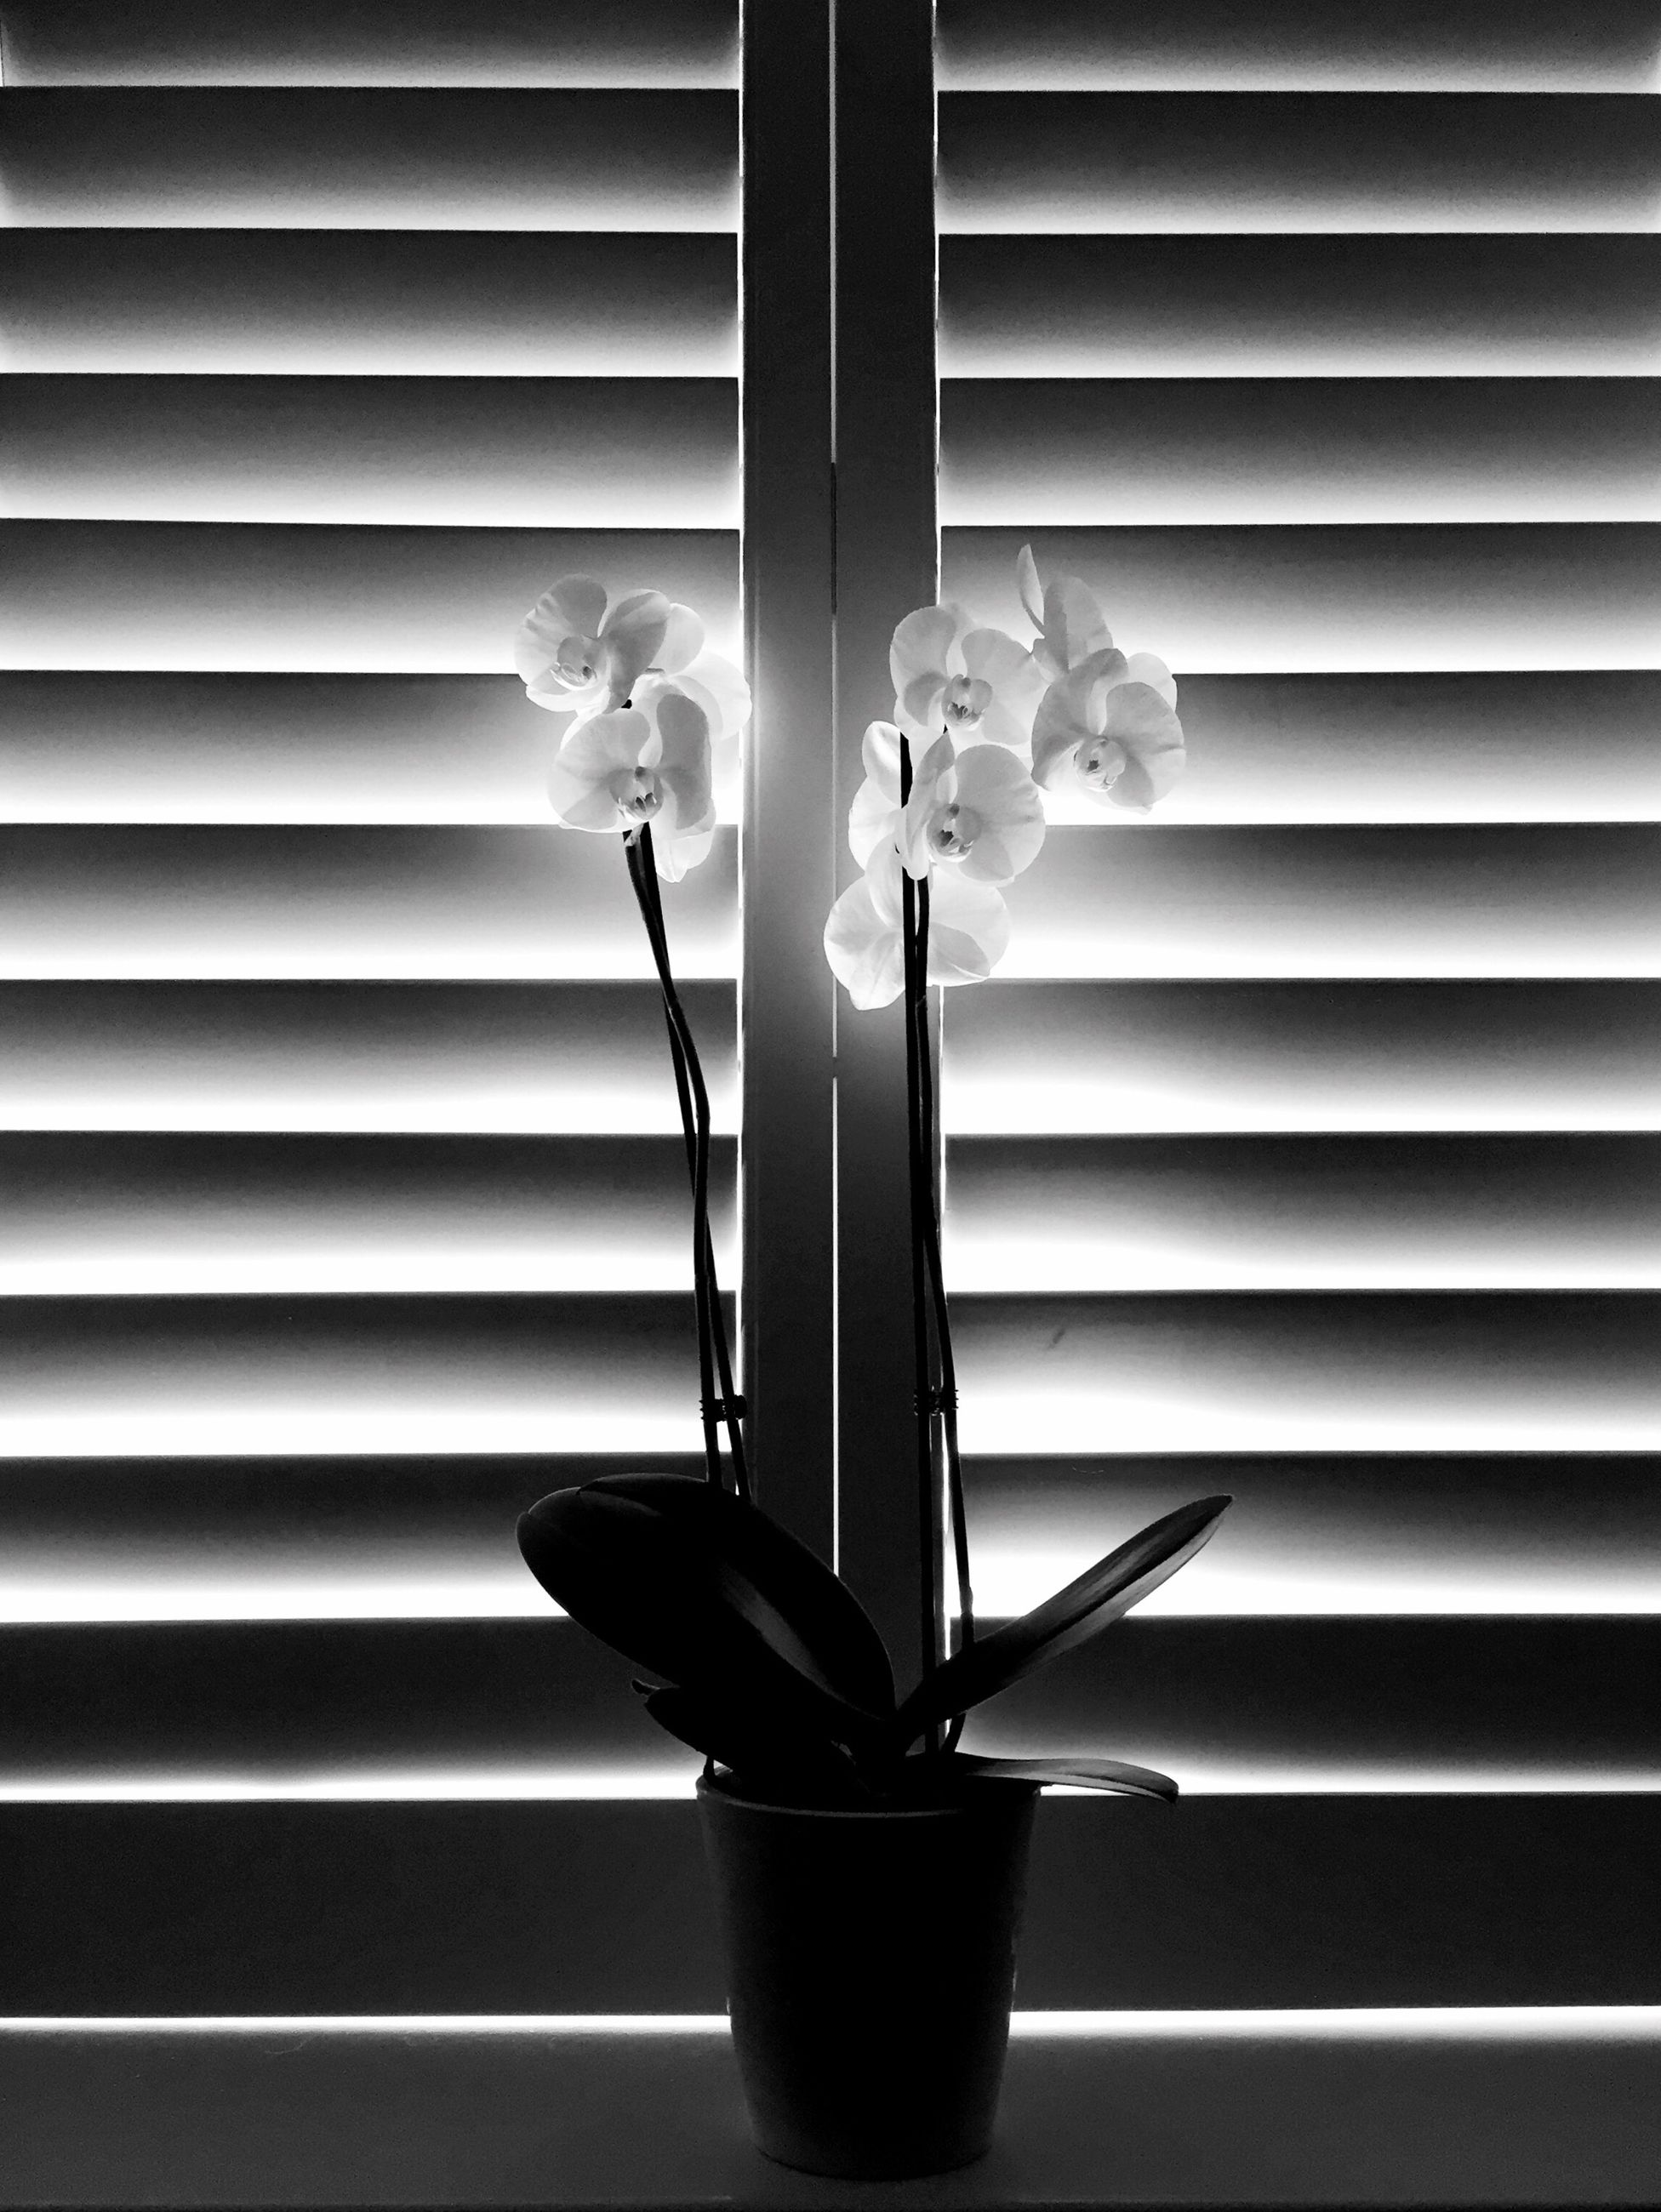 flower, vase, window sill, fragility, growth, freshness, plant, close-up, petal, flower head, decoration, simplicity, day, no people, blinds, stem, nature